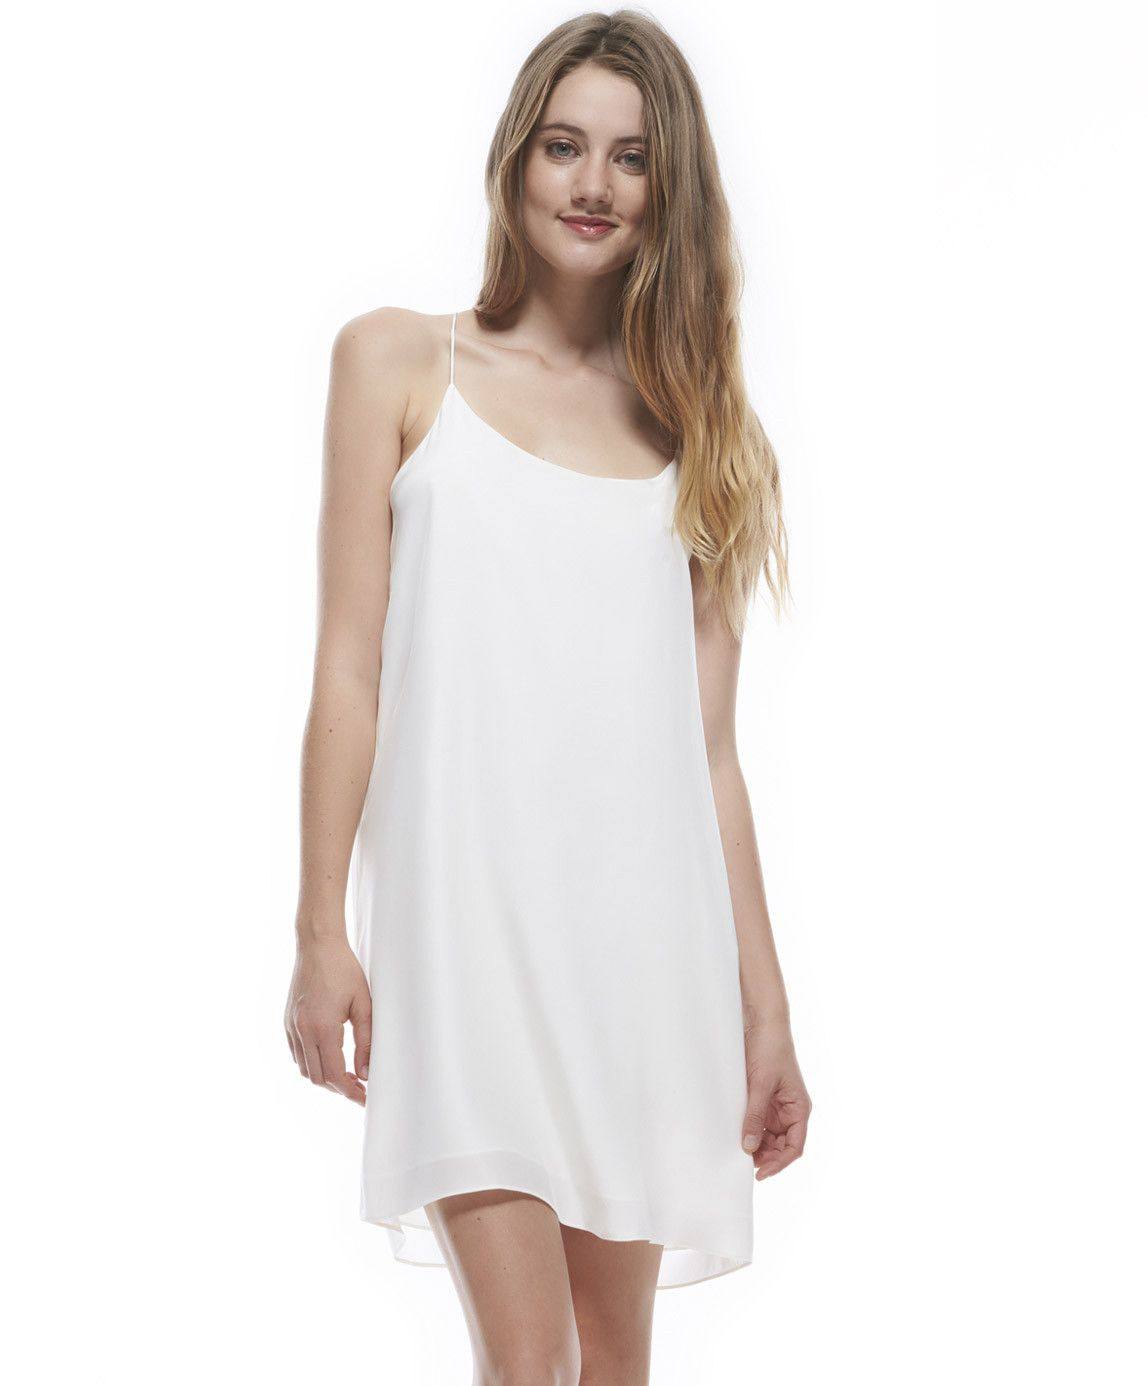 Tangrine NYC women's silk spaghetti strap Reed dress in off white best seller